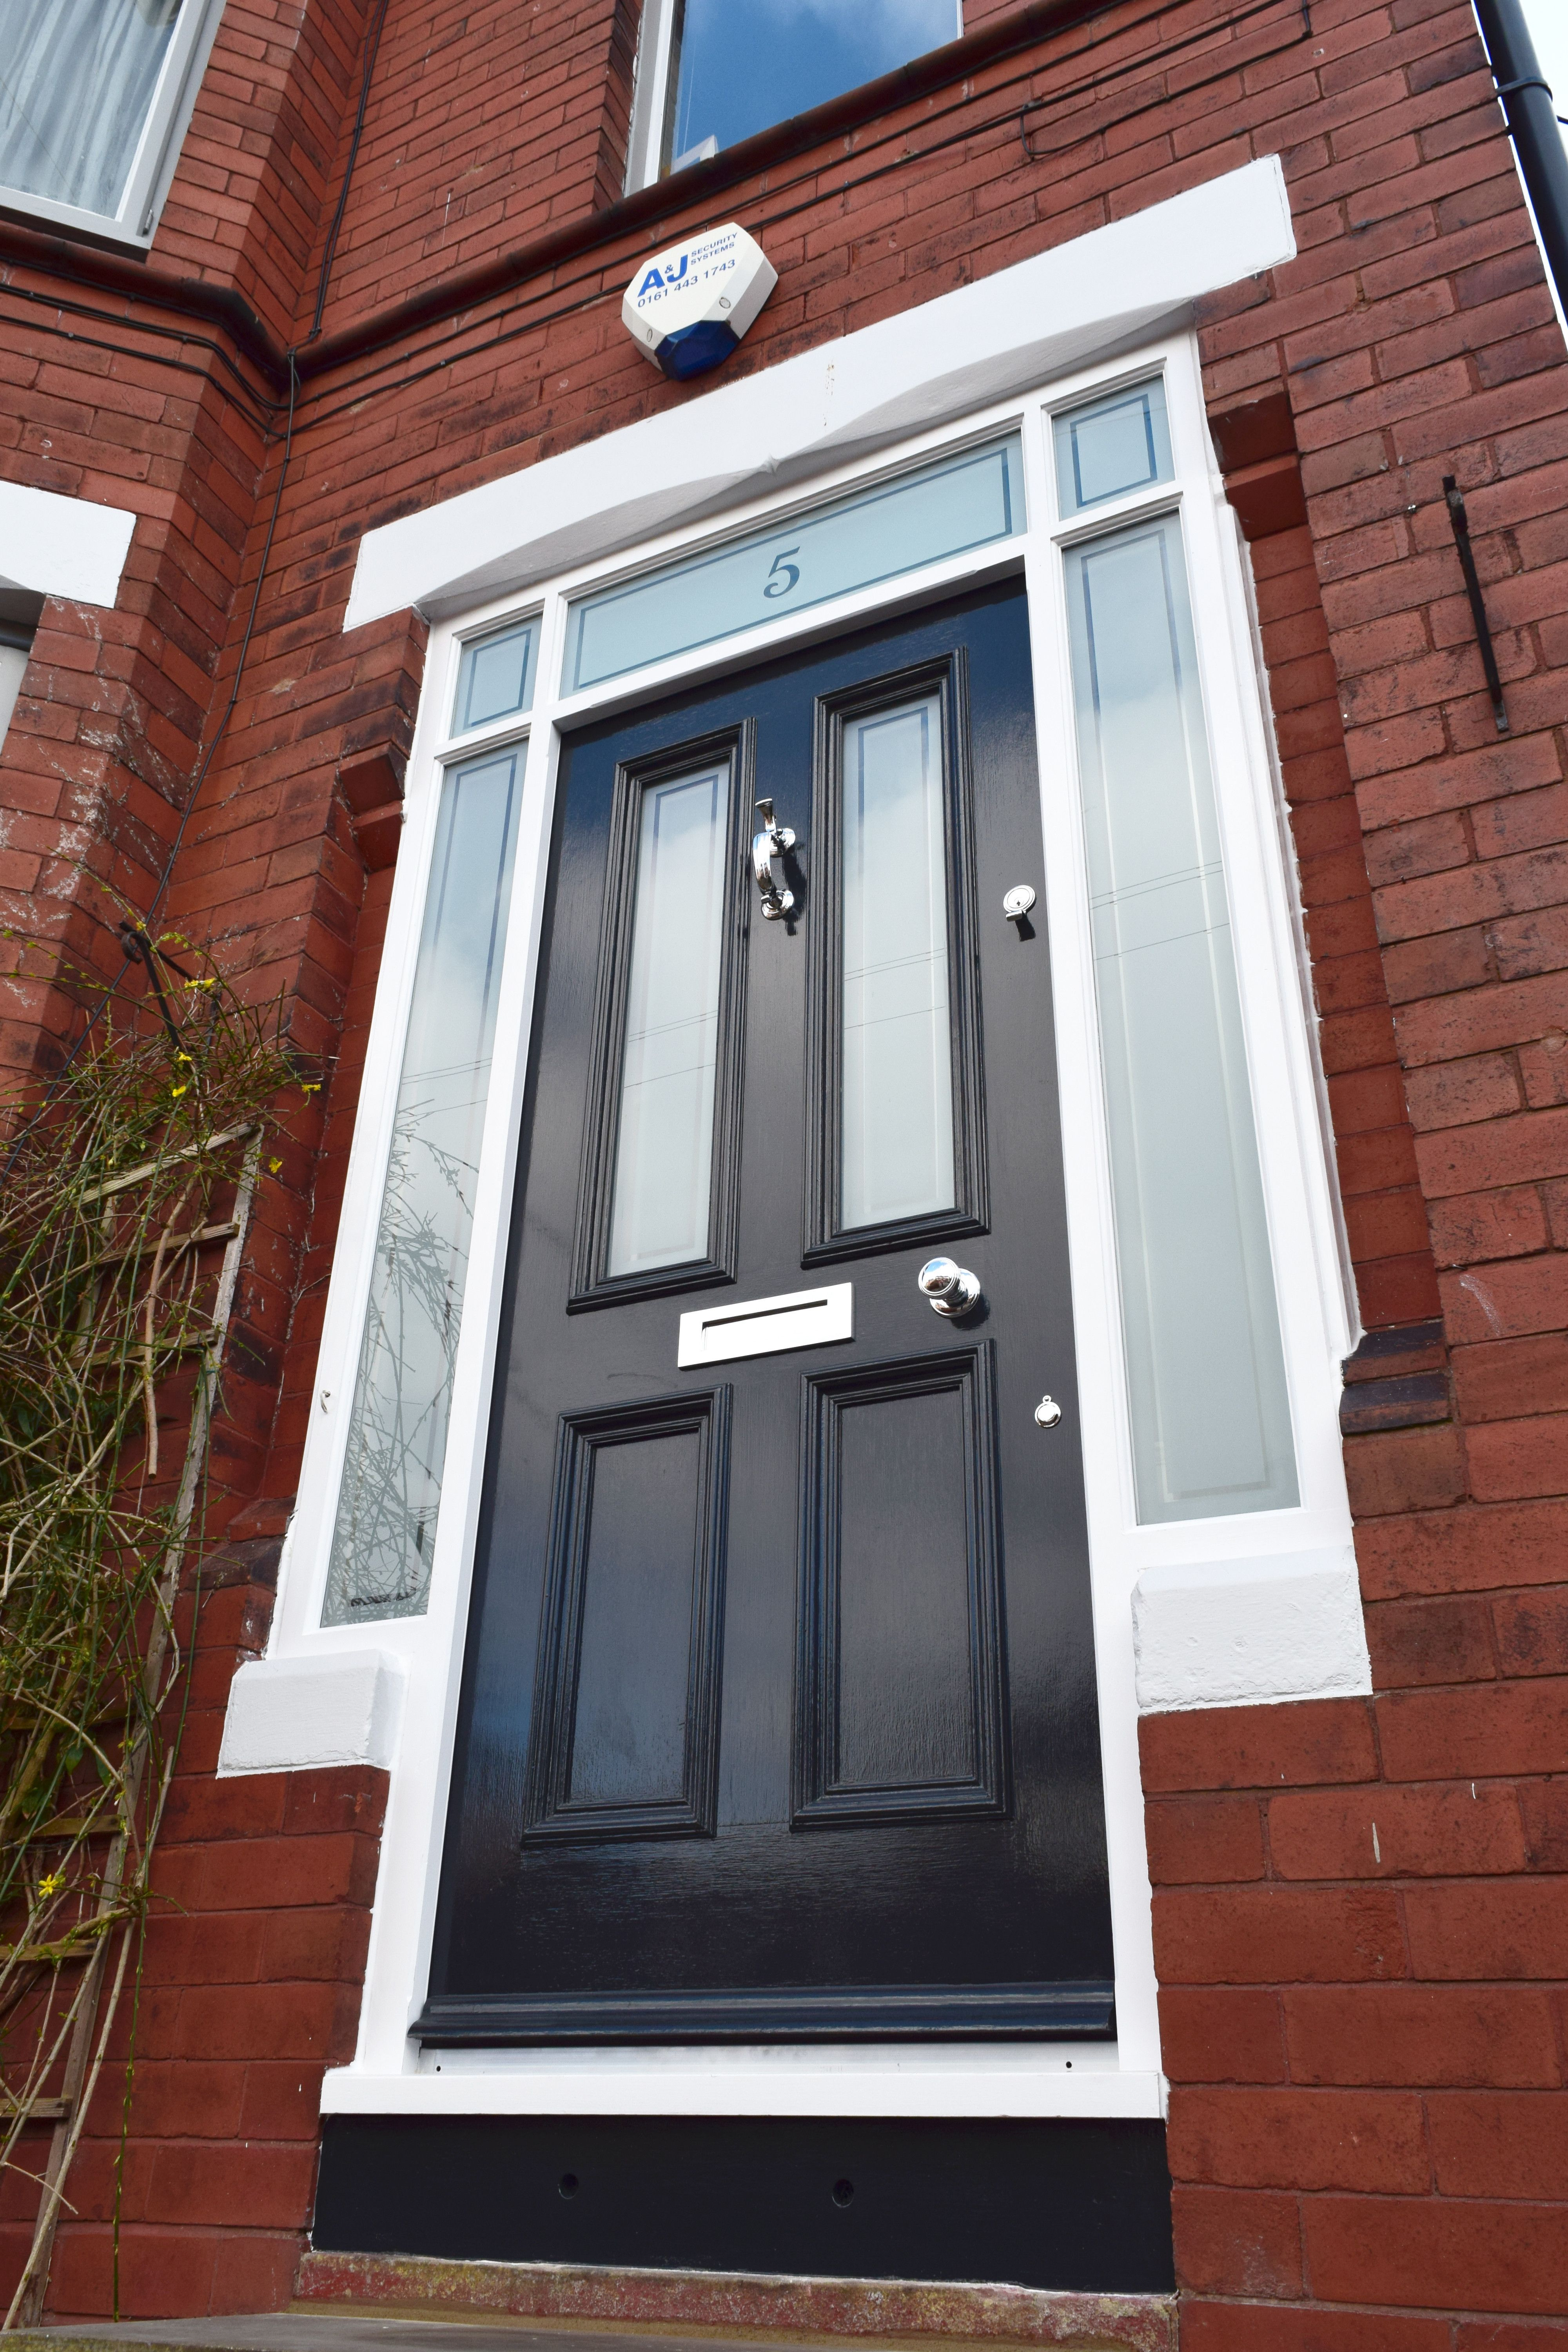 Beau Grand Victorian Front Door In Frame With Surrounding Etched Lights In  Didsbury.